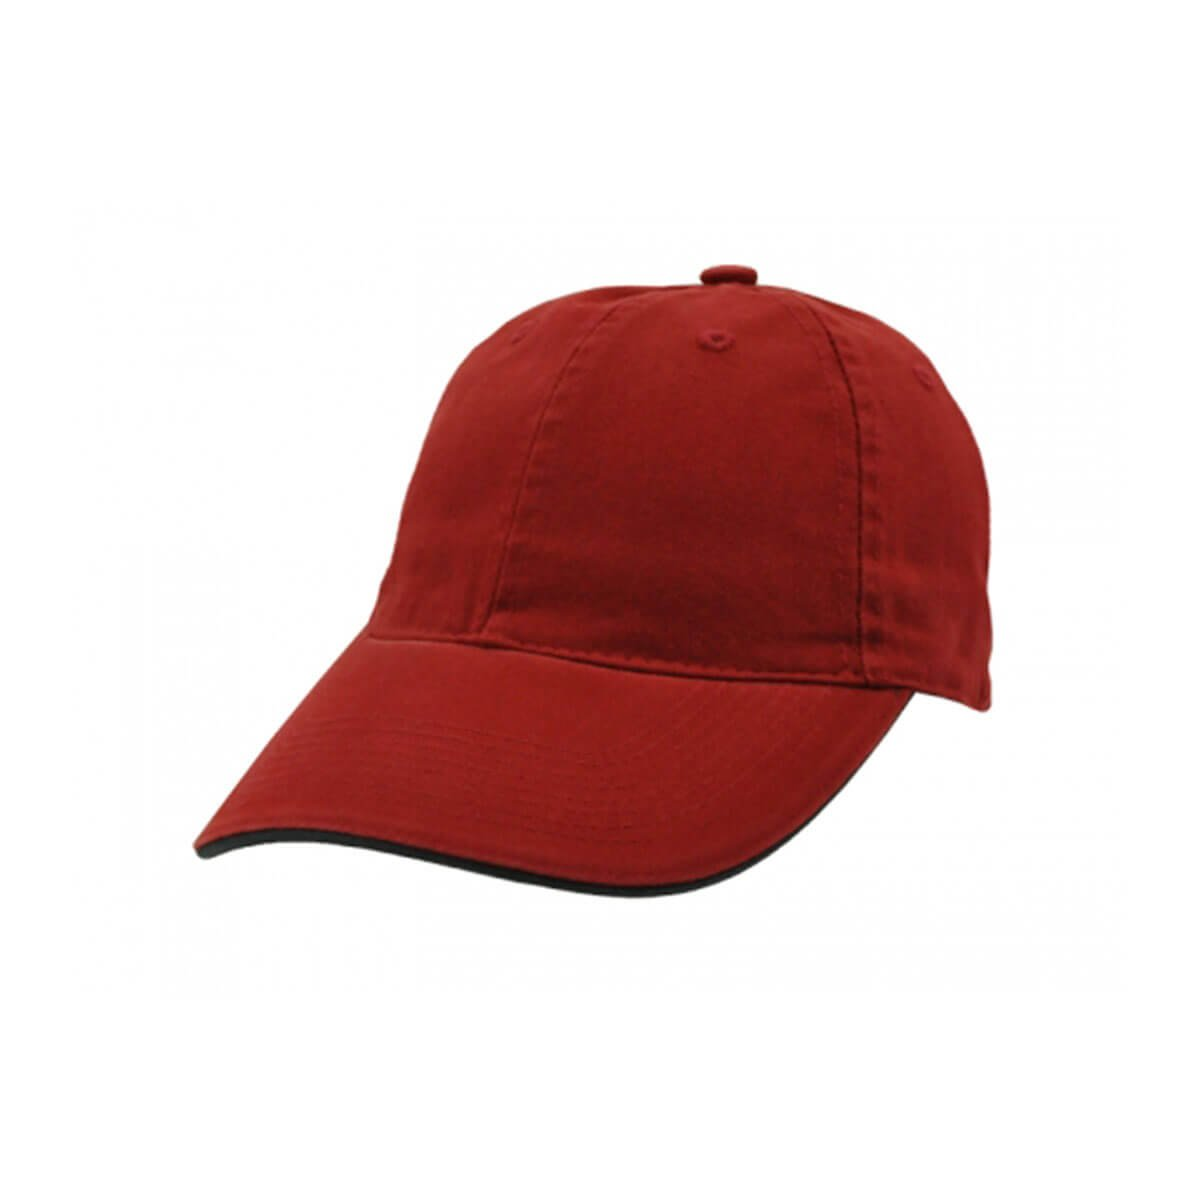 Enzyme Washed Cap with Sandwich-Red / Navy